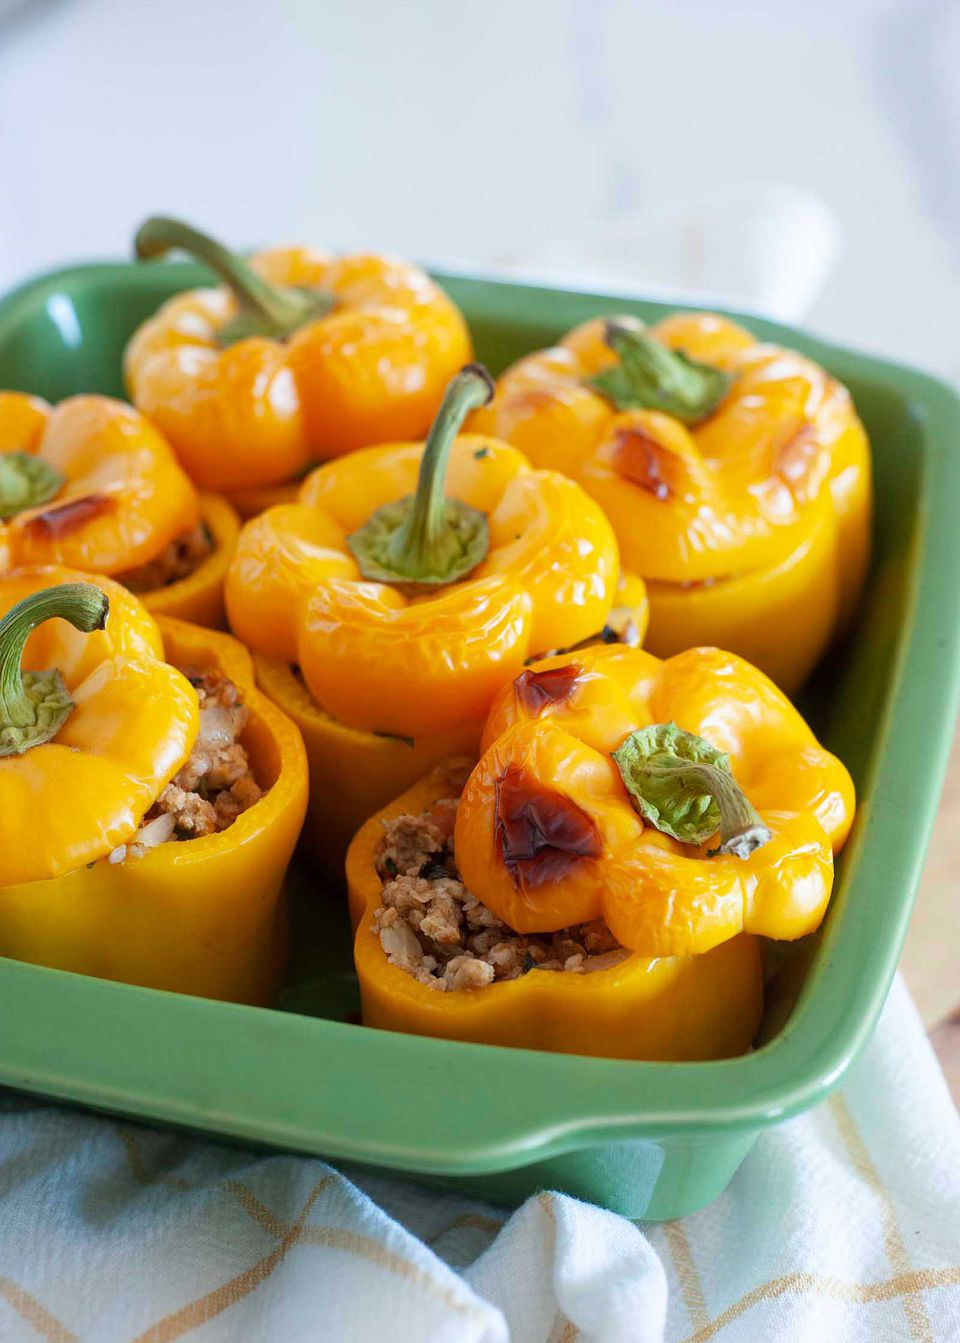 Close up of the casserole dish with the easy stuffed peppers inside. The tops of the peppers are slightly browned from the oven.